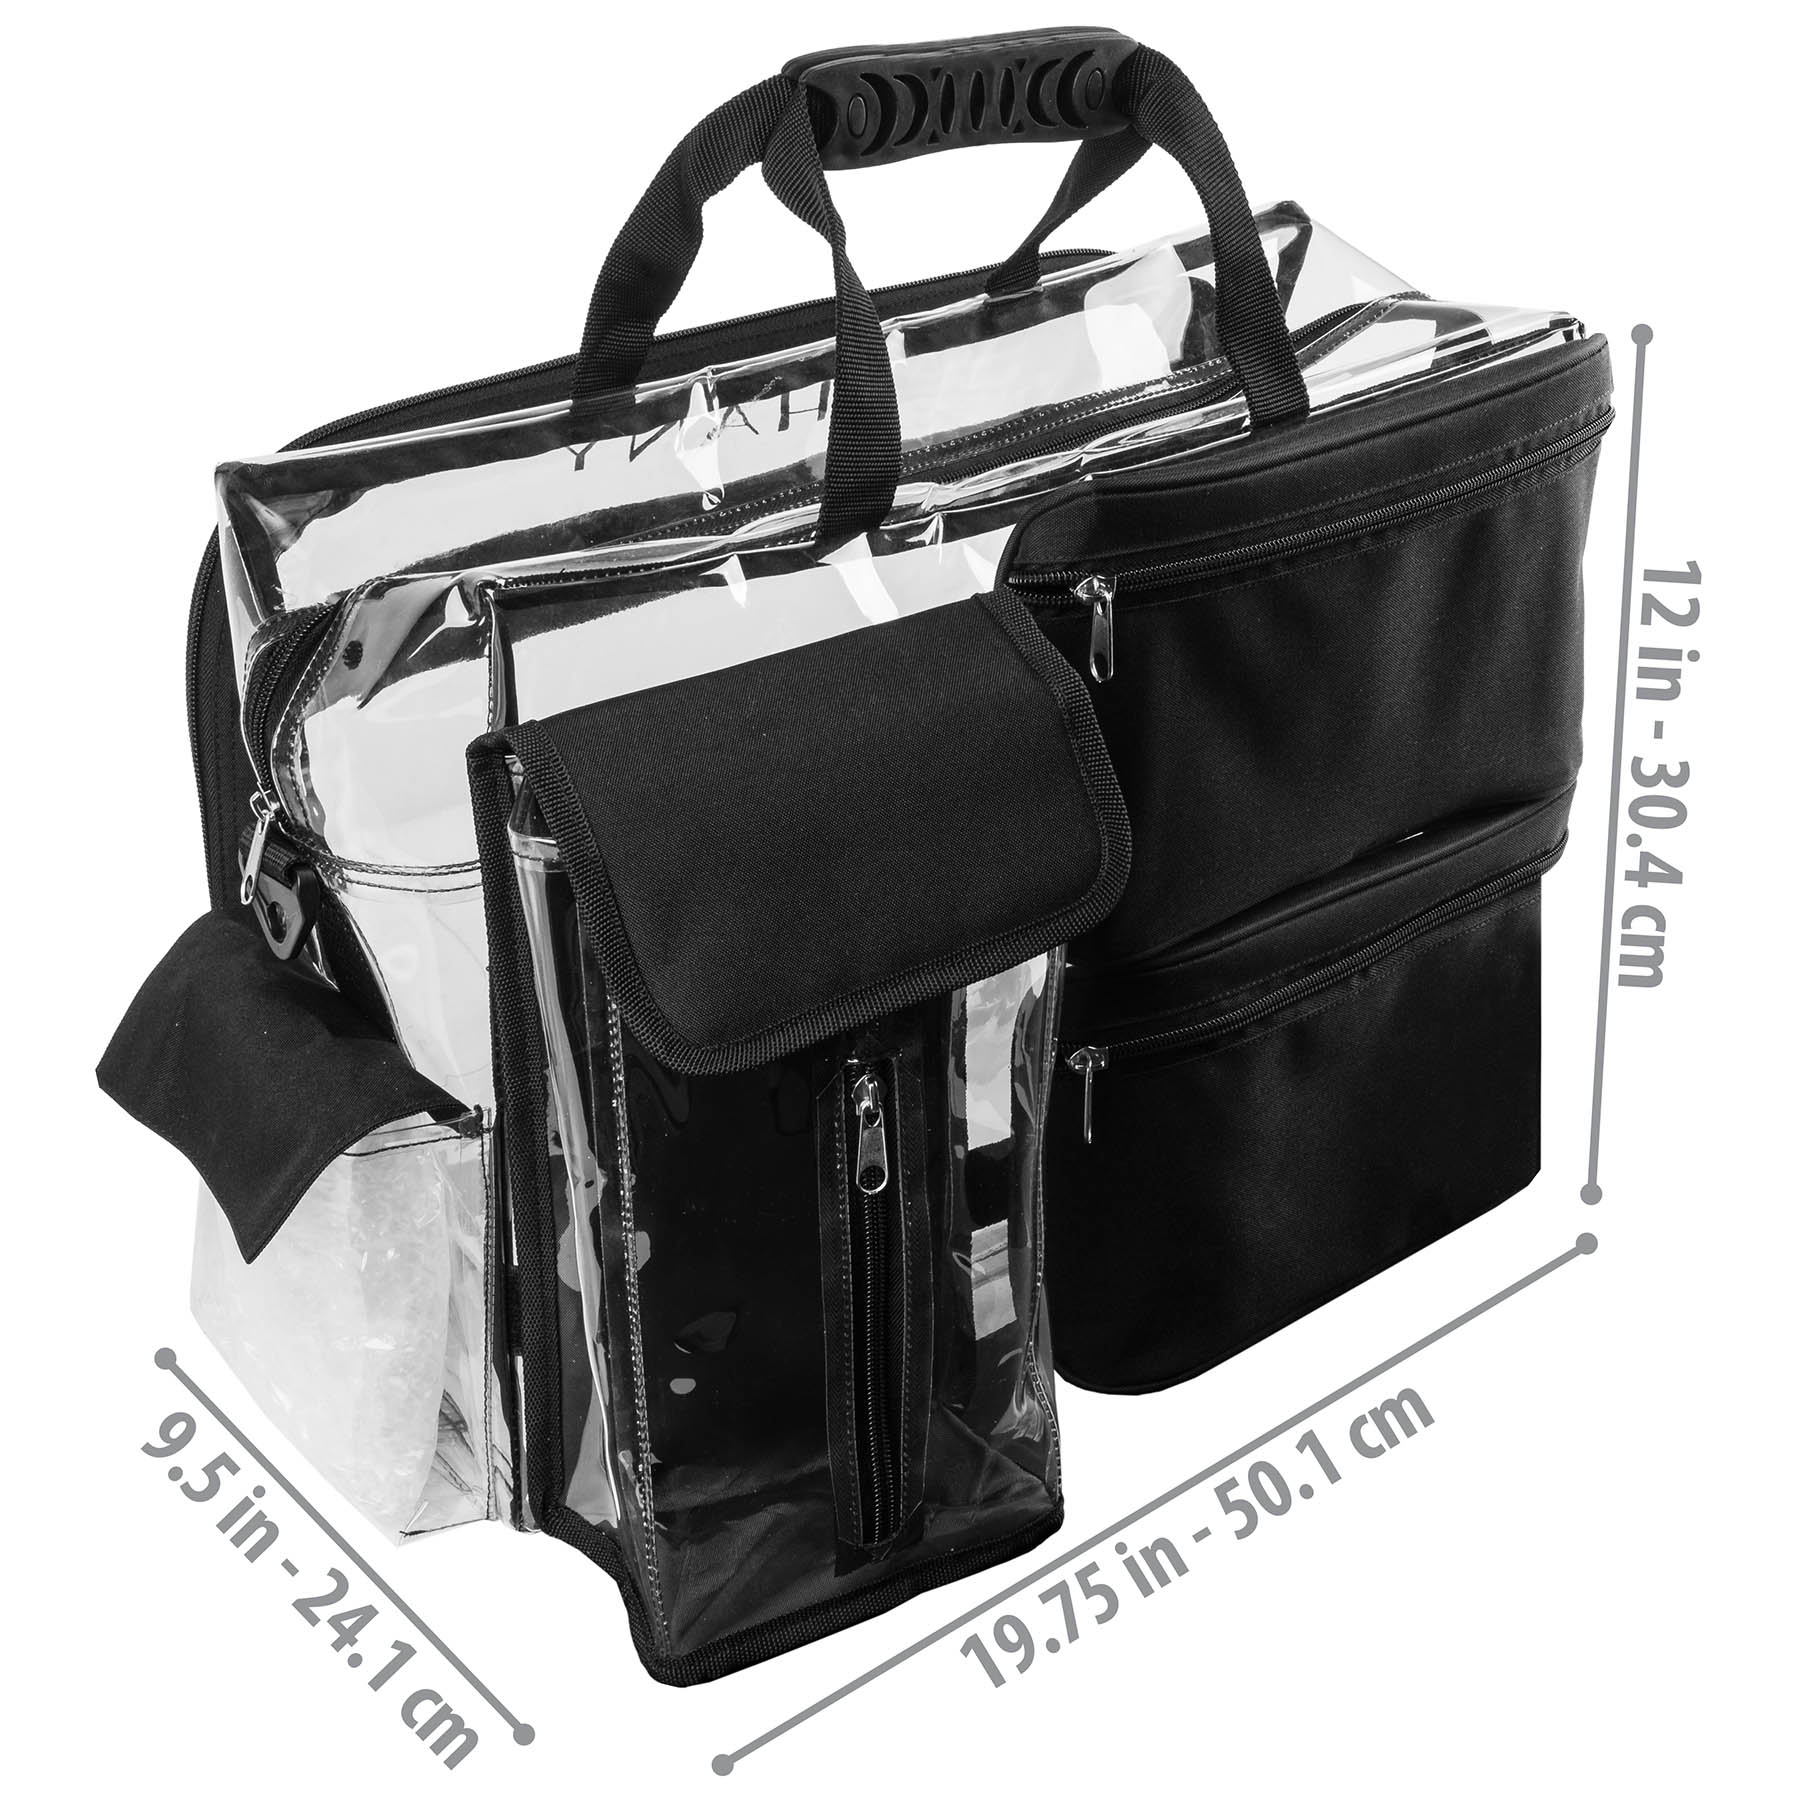 Shany Travel Makeup Artist Bag With Removable Compartments Clear Tote Detachable Pockets Organizer Black